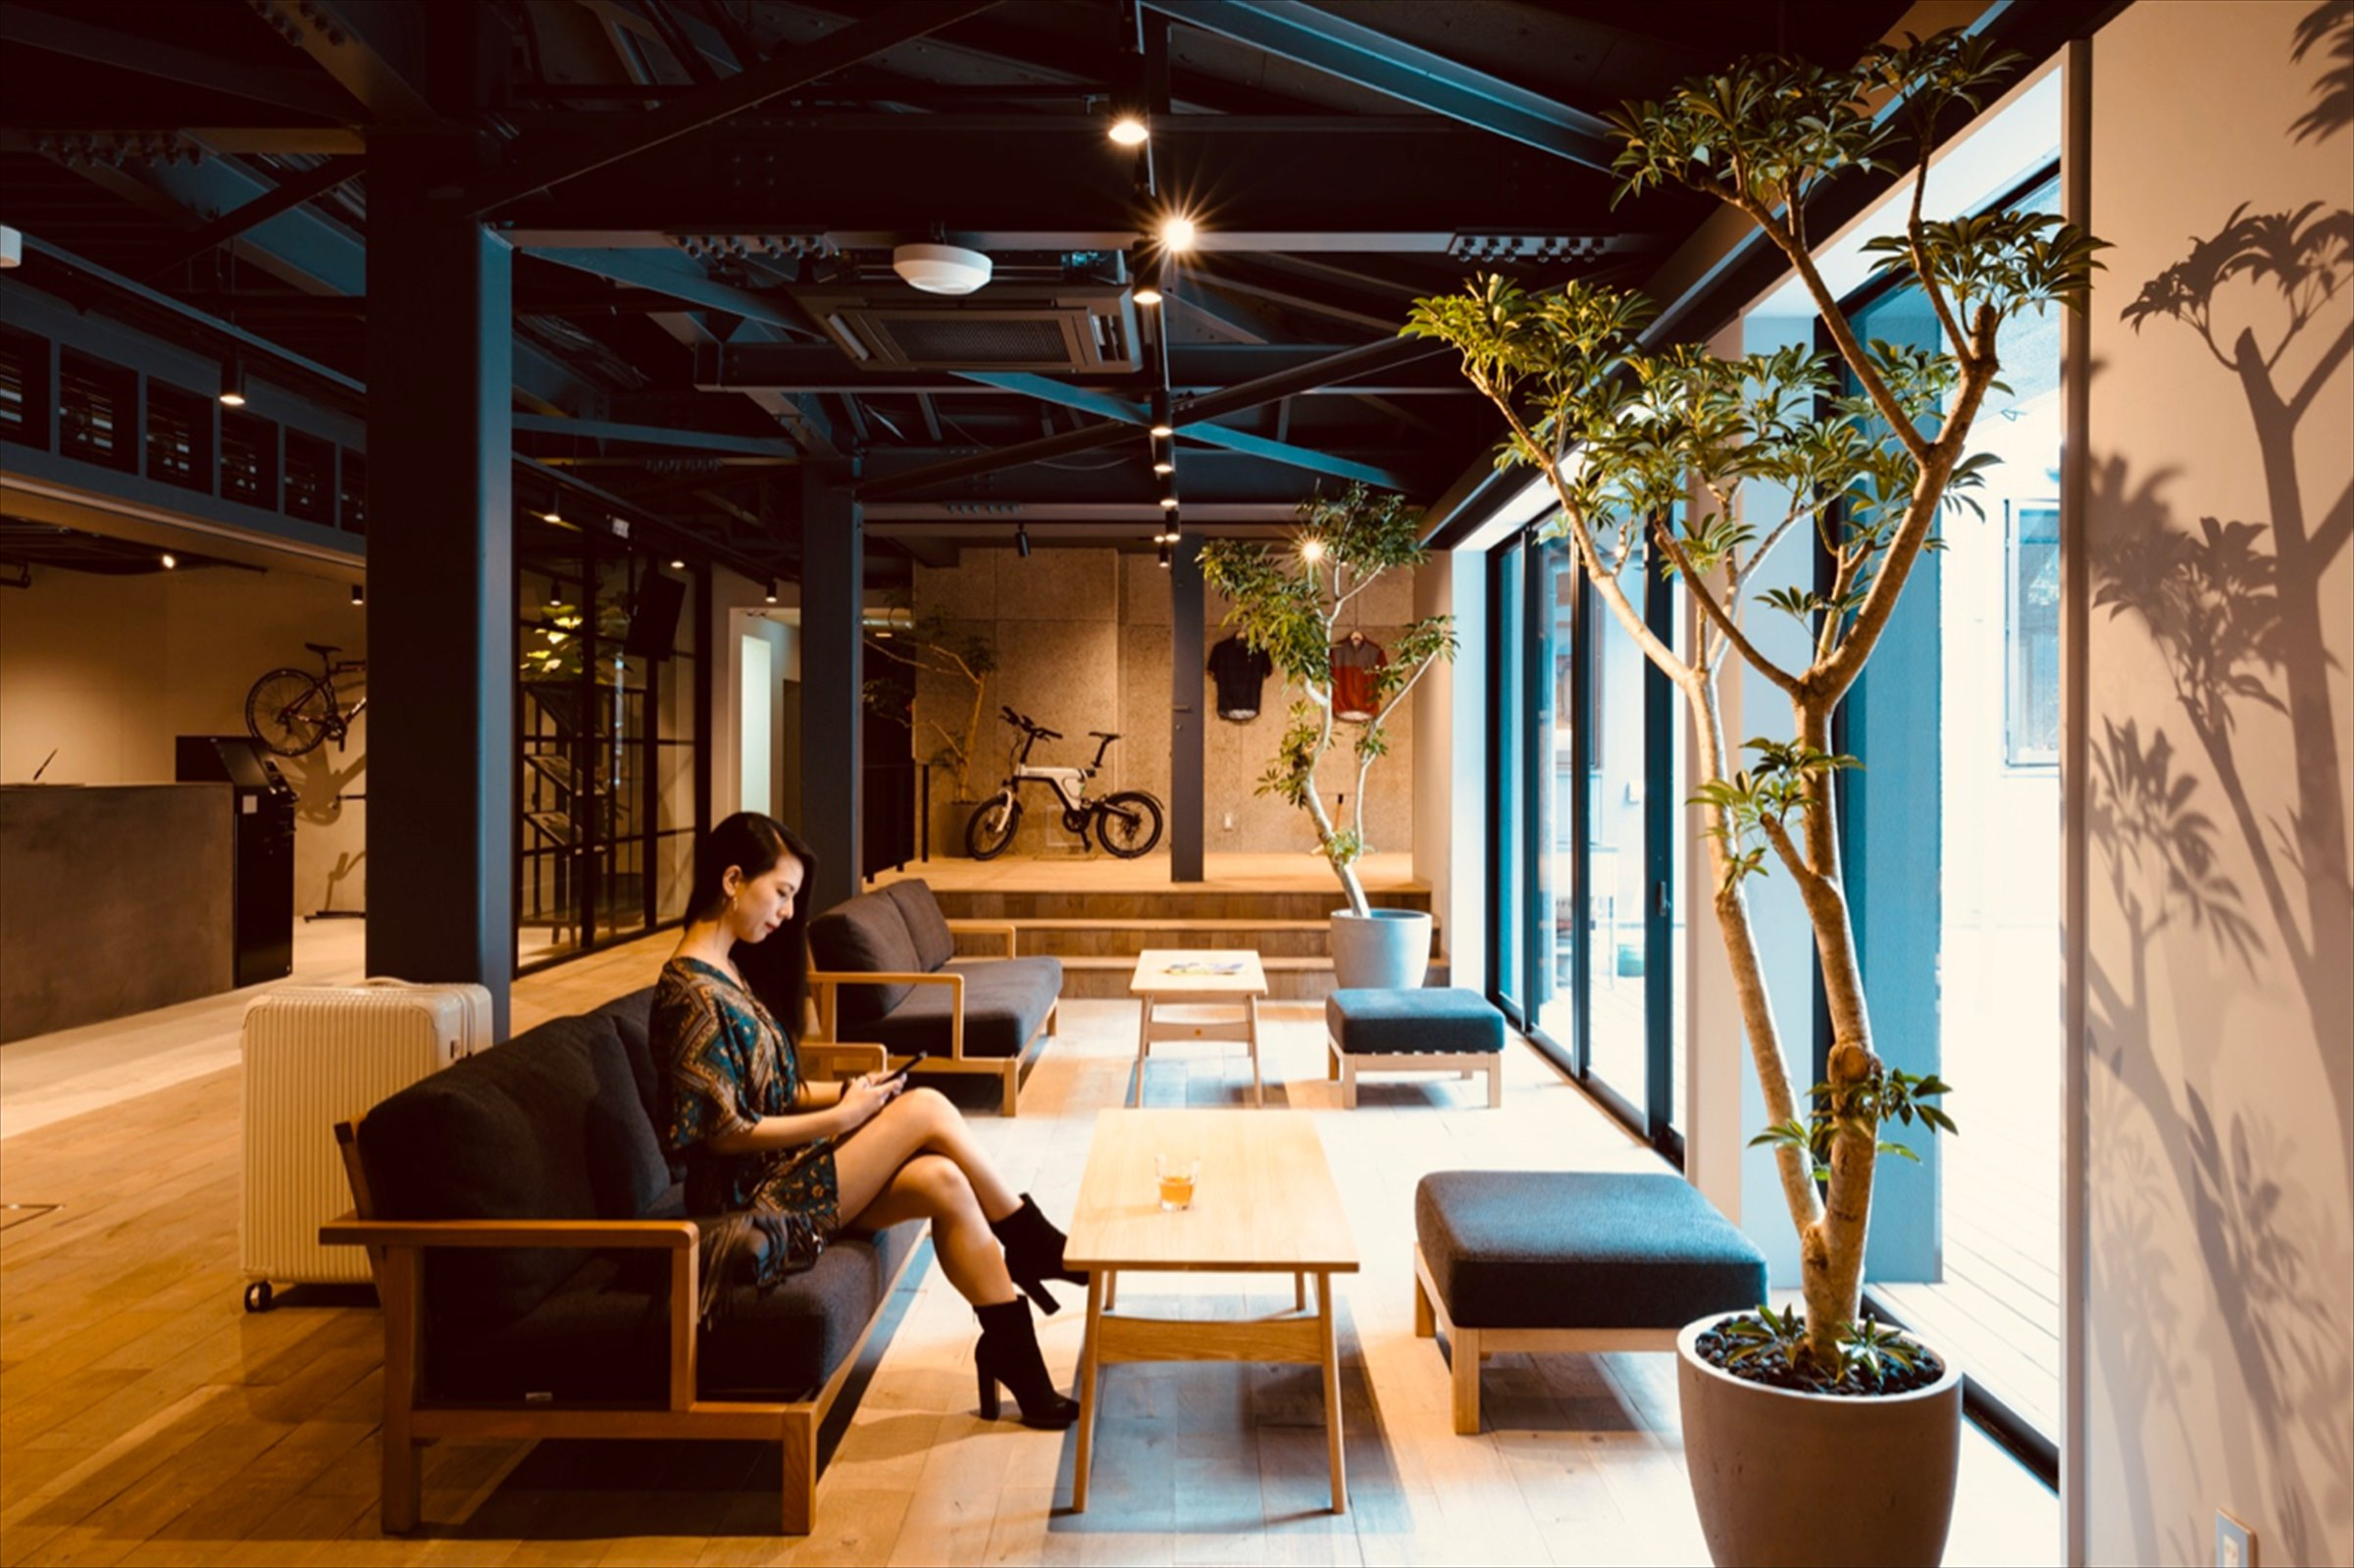 The Lobby where both Bicycle Lovers and Locals Gather